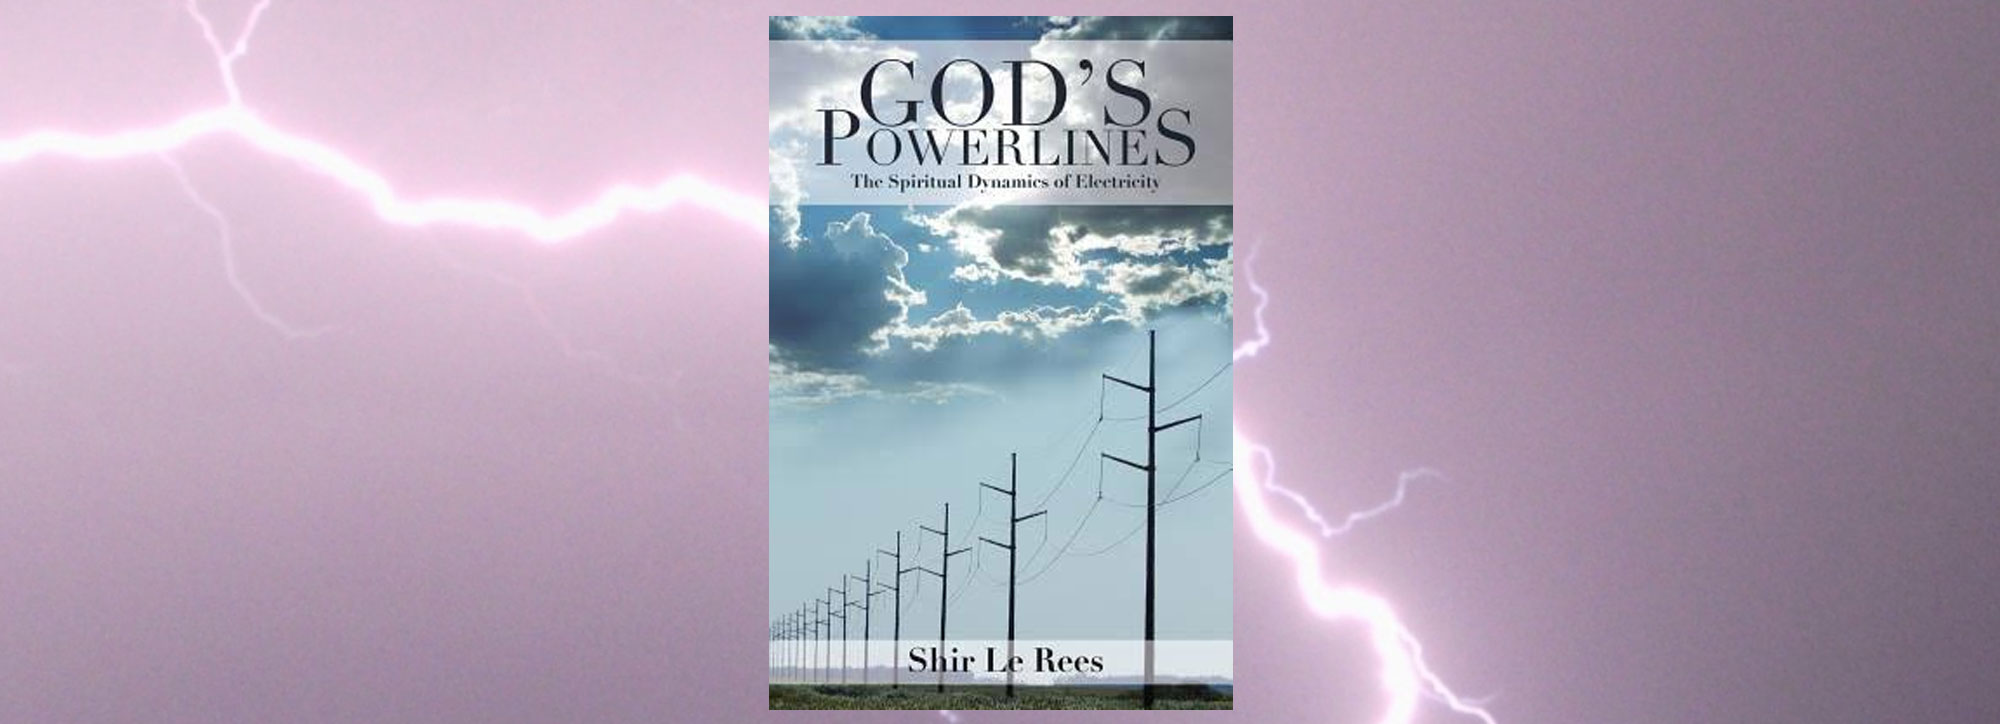 God's Powerlines